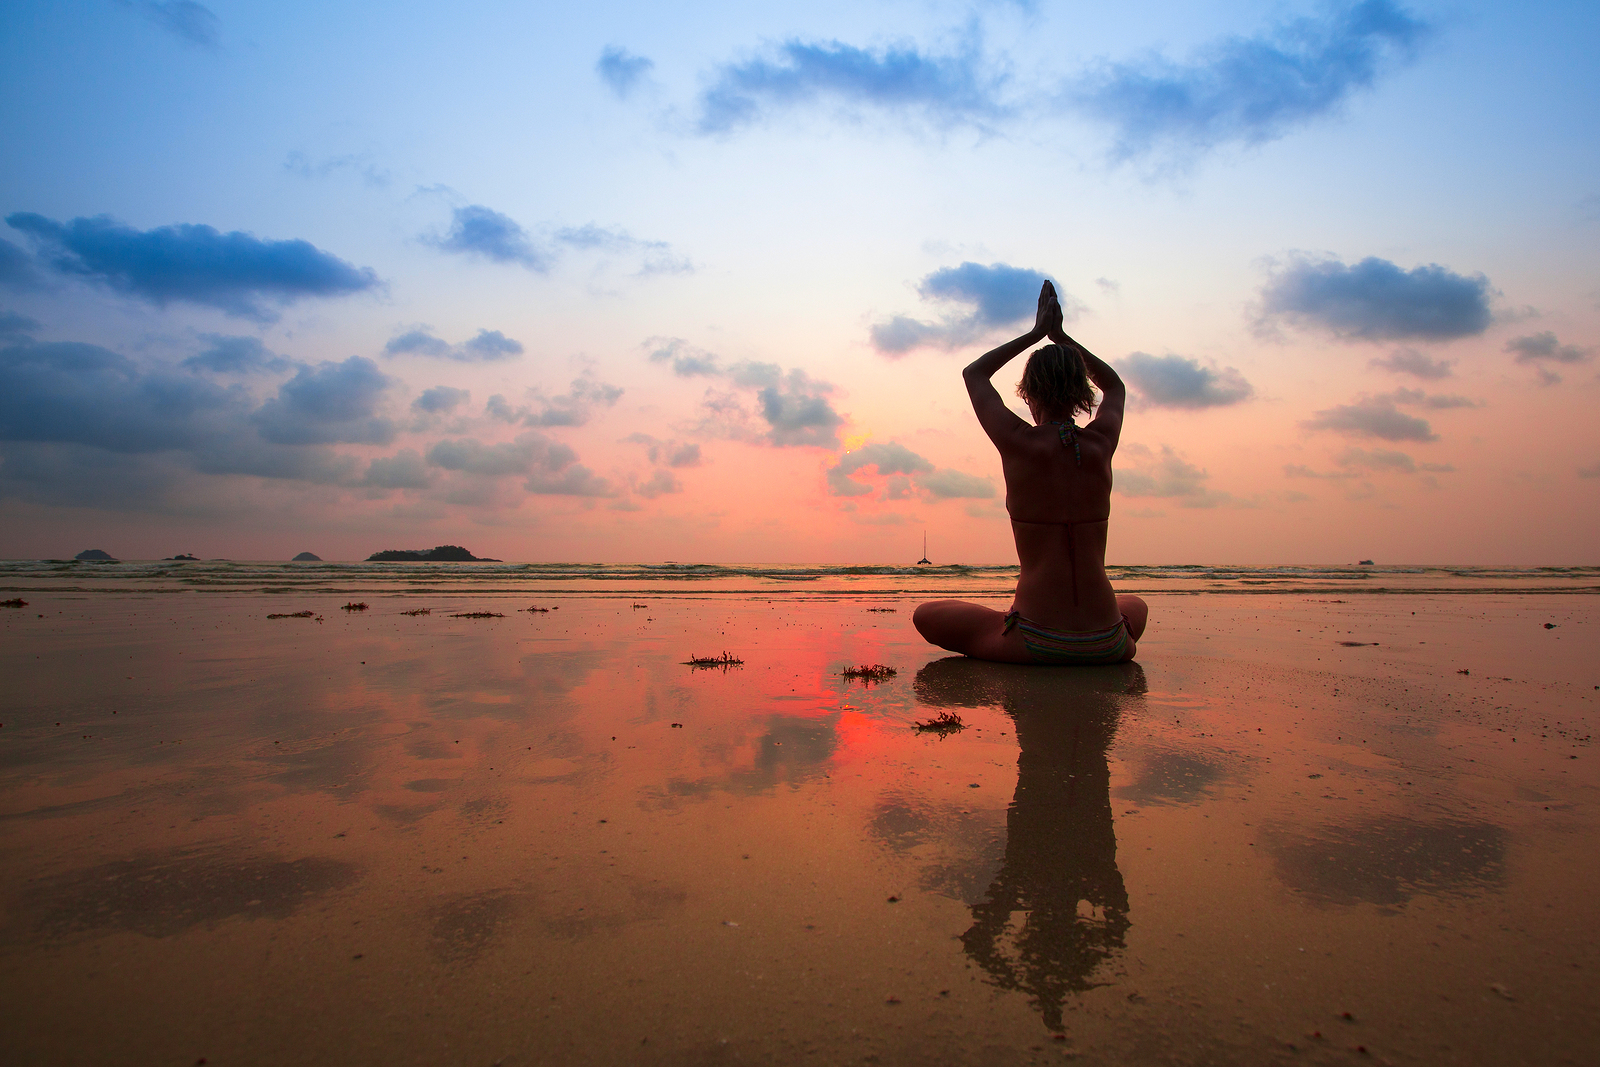 silhouette_young_woman_practicing_yoga_on_the_beac_by_macinivnw-d68myp9.jpg